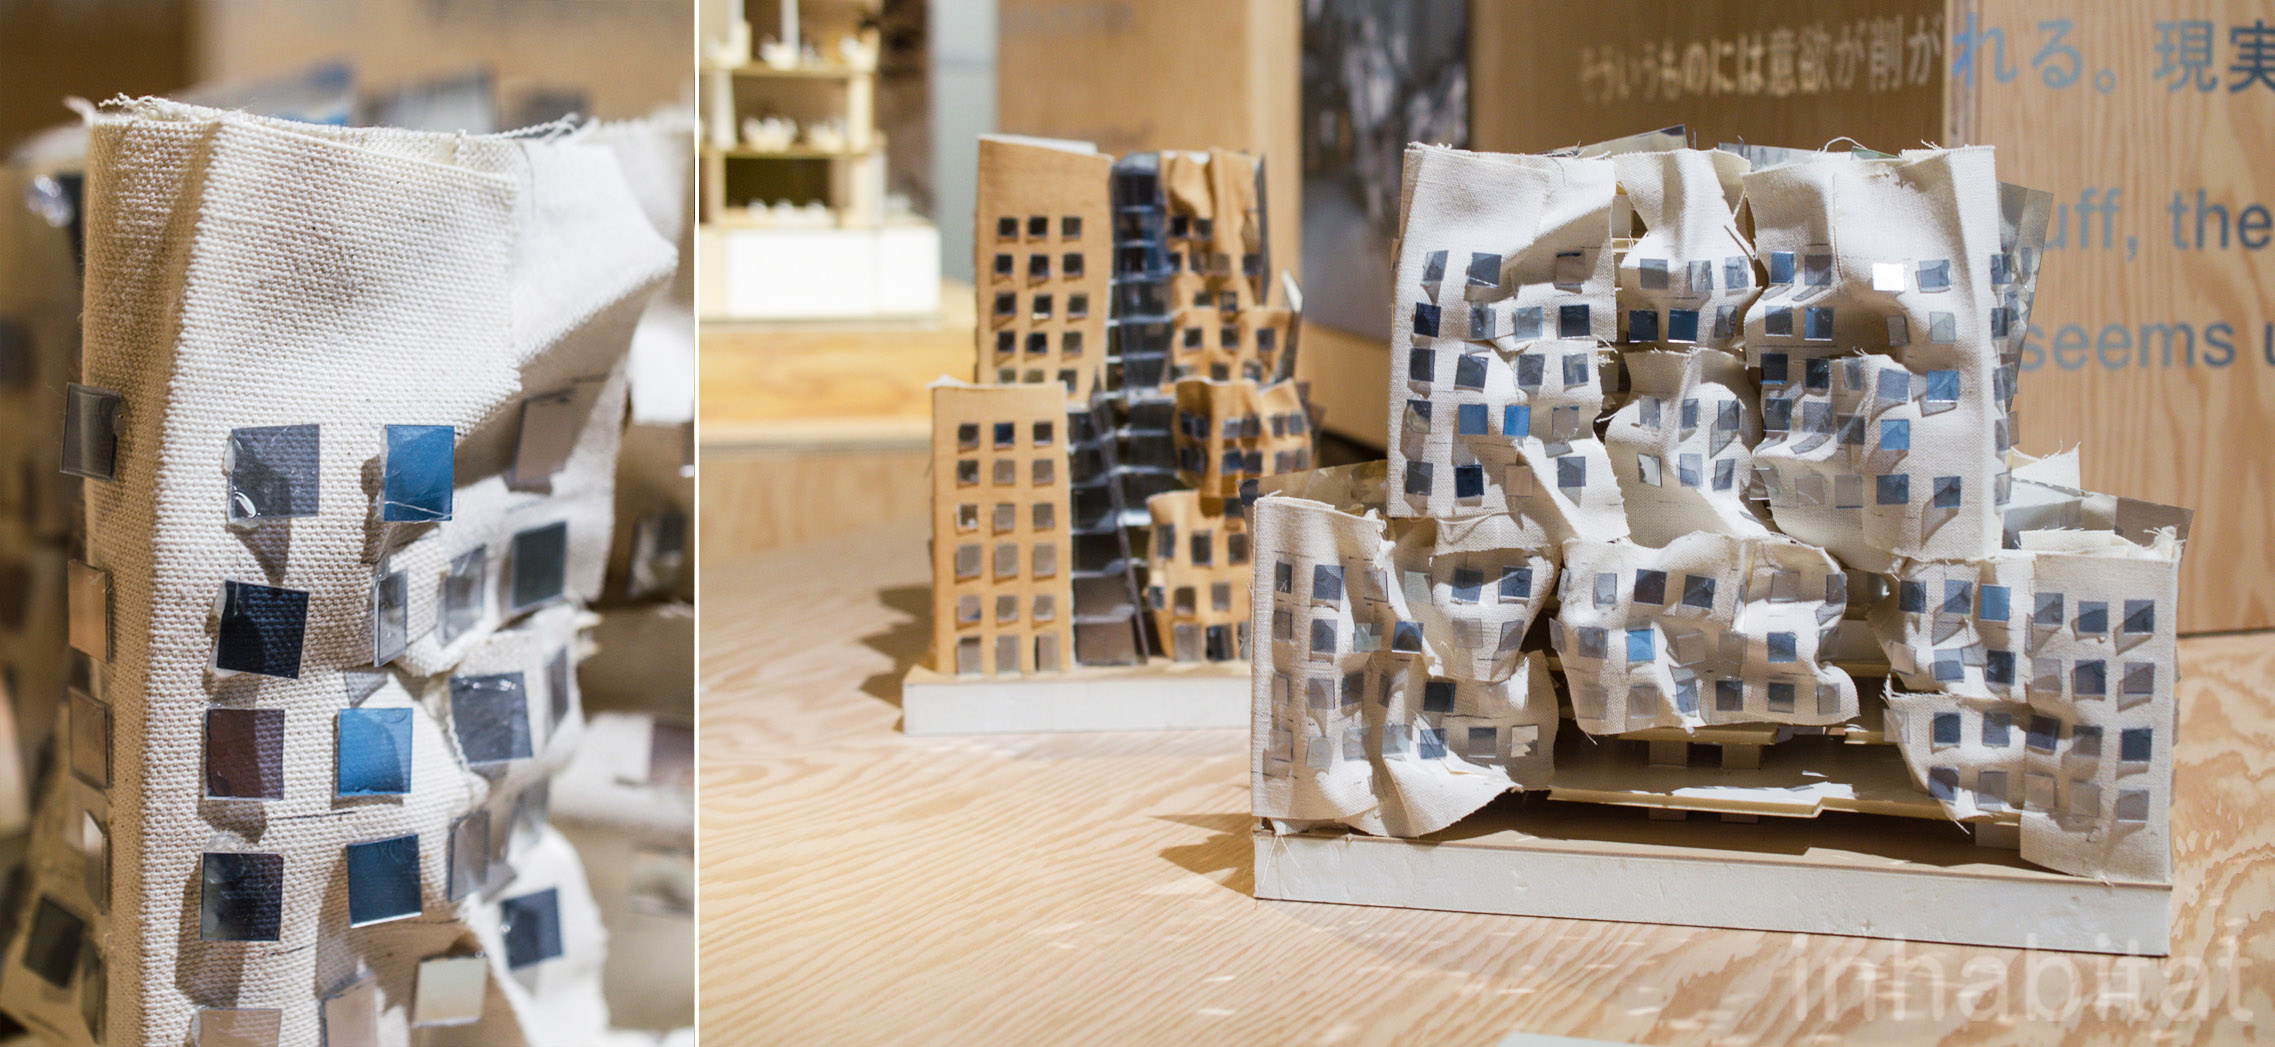 How Frank Gehry S Provocative Designs Go From Concept To